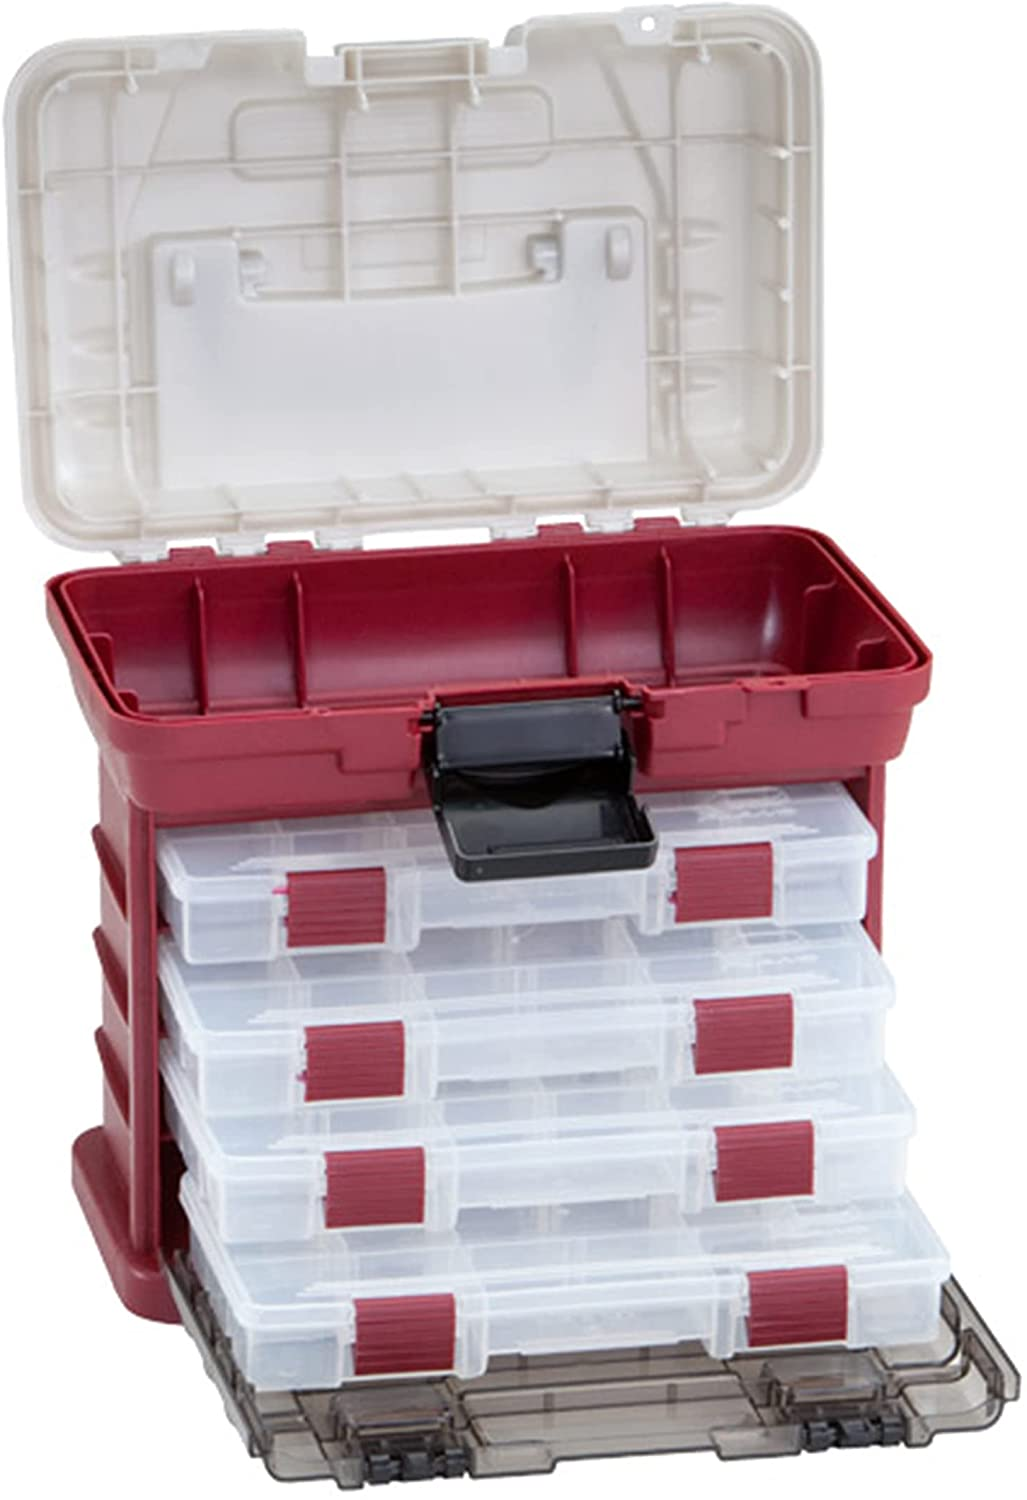 Plano 1354-02 -by Popular brand in the world Rack System 3500 Size Box safety Tack Tackle Premium